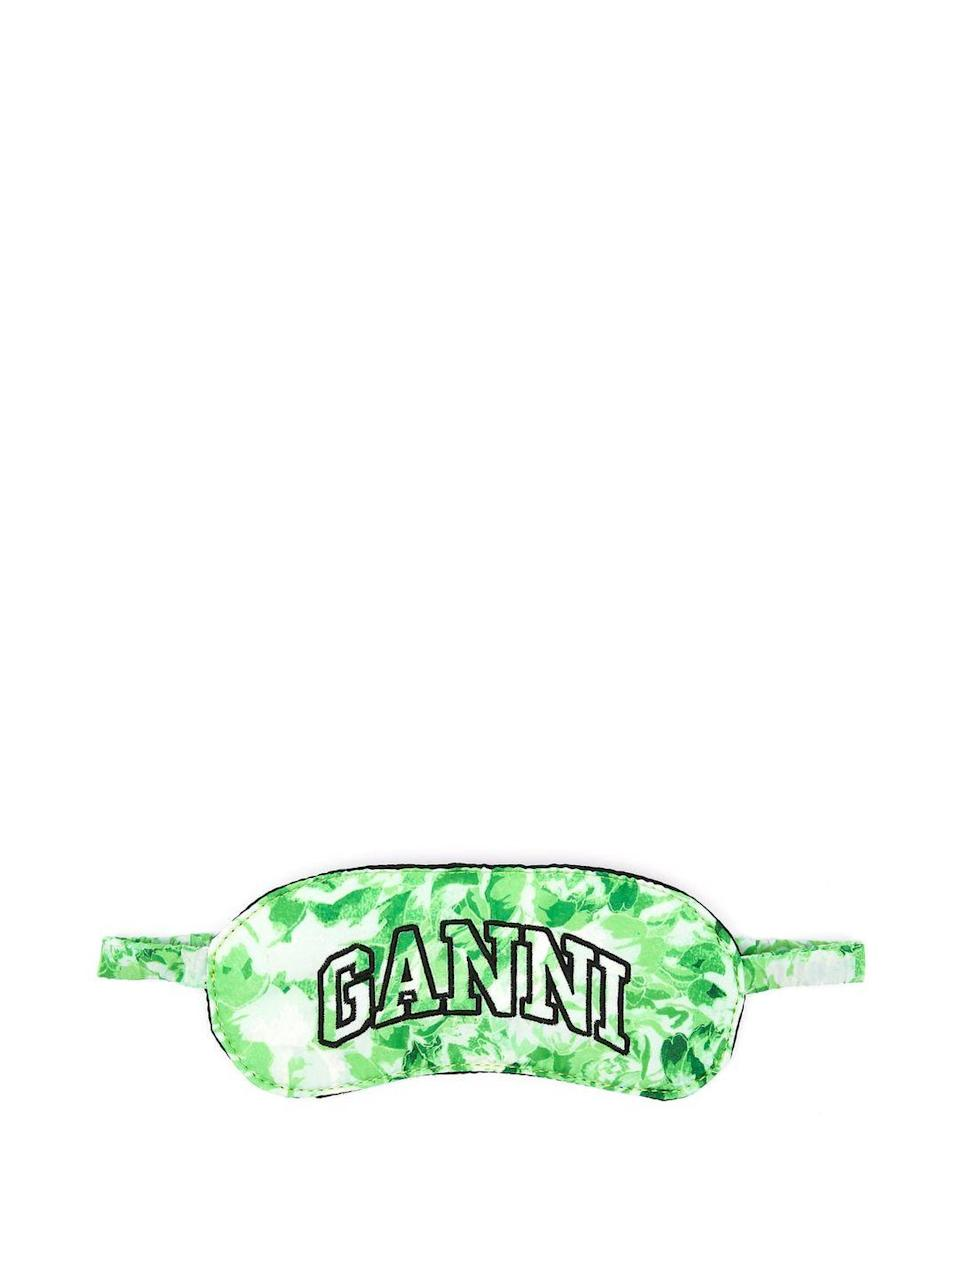 """<p>Ganni</p><p>Was £40.00</p><p>Now £24.00</p><p><a class=""""link rapid-noclick-resp"""" href=""""https://go.redirectingat.com?id=127X1599956&url=https%3A%2F%2Fwww.matchesfashion.com%2Fproducts%2FGanni-Logo-embroidered-recycled-fibre-eye-mask-1401027&sref=https%3A%2F%2Fwww.elle.com%2Fuk%2Ffashion%2Fwhat-to-wear%2Fg36616066%2Fmatches-fashion-sale%2F"""" rel=""""nofollow noopener"""" target=""""_blank"""" data-ylk=""""slk:SHOP NOW"""">SHOP NOW</a></p><p>Sleep tight with Ganni.</p>"""